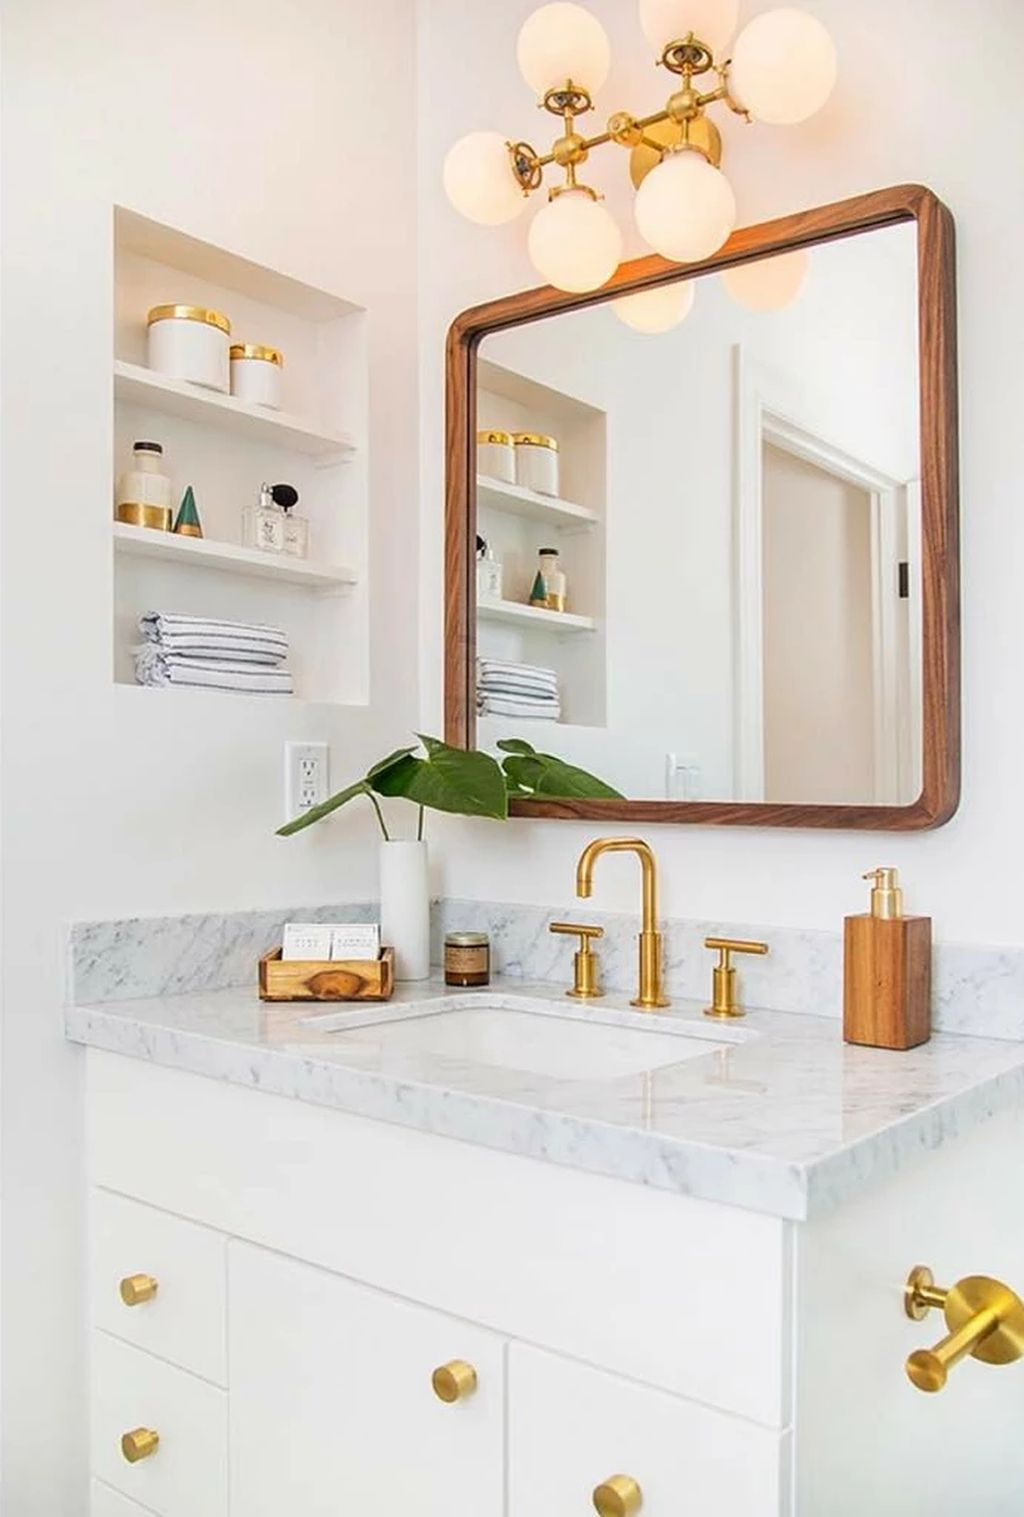 44 Awesome Bathroom Mirror Design Ideas That You Need To Know In 2020 White Vanity Bathroom Bathroom Styling Bathroom Interior